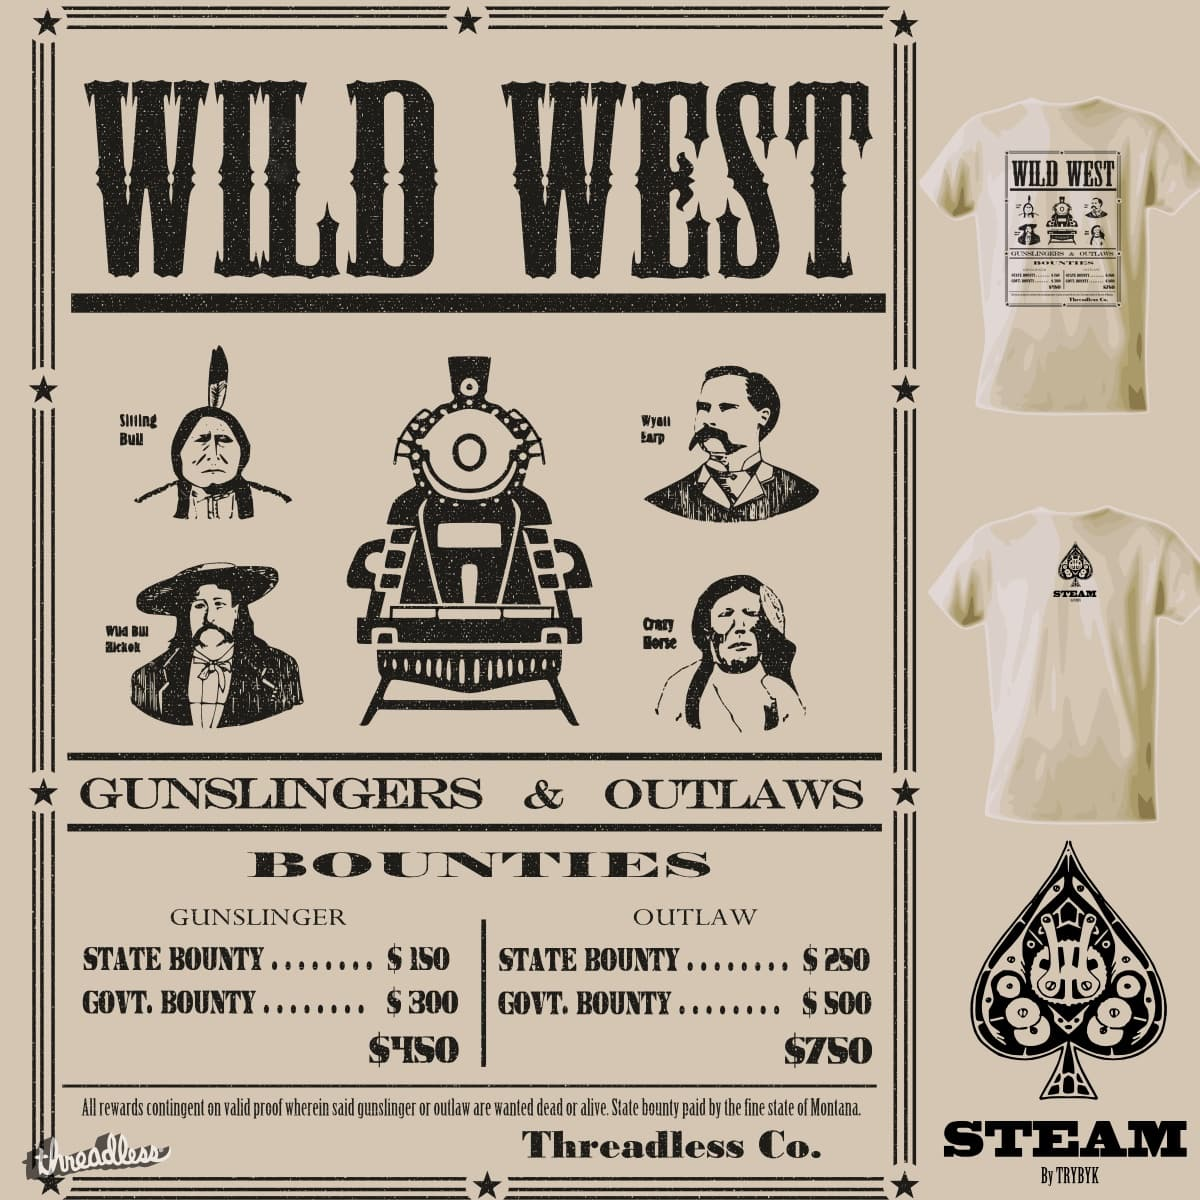 Wild West by TRYBYK on Threadless